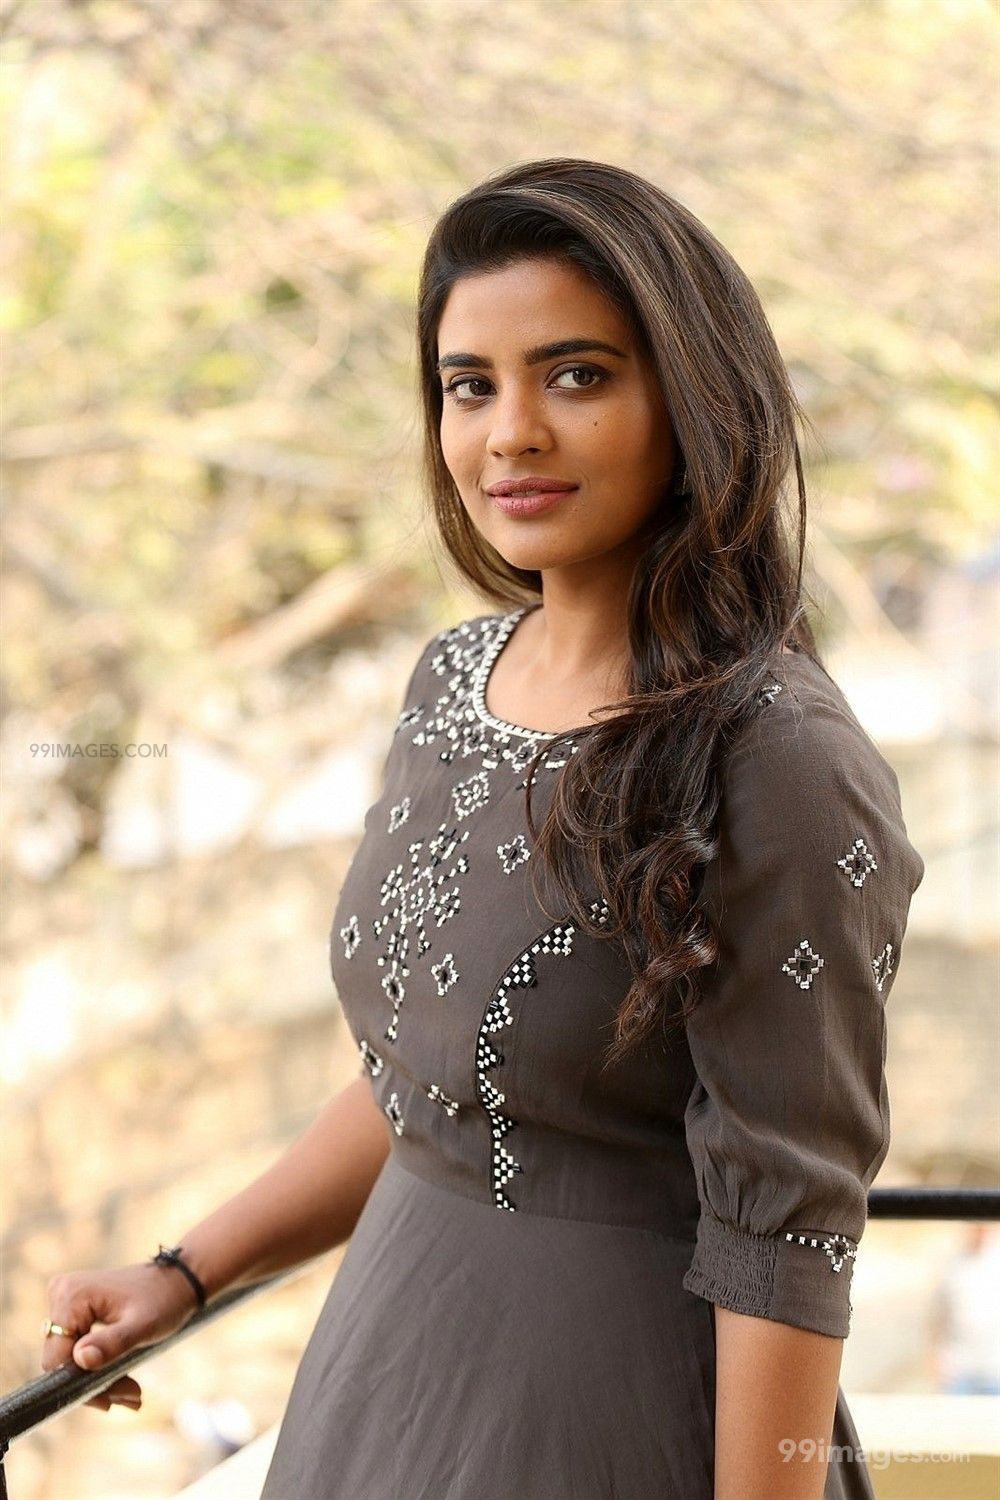 Aishwarya Rajesh Hot Beautiful Photos Mobile Wallpapers Hd Android Iphone 1080p 304390 Hd Wallpapers For Mobile Indian Actress Hot Pics Beautiful Photo